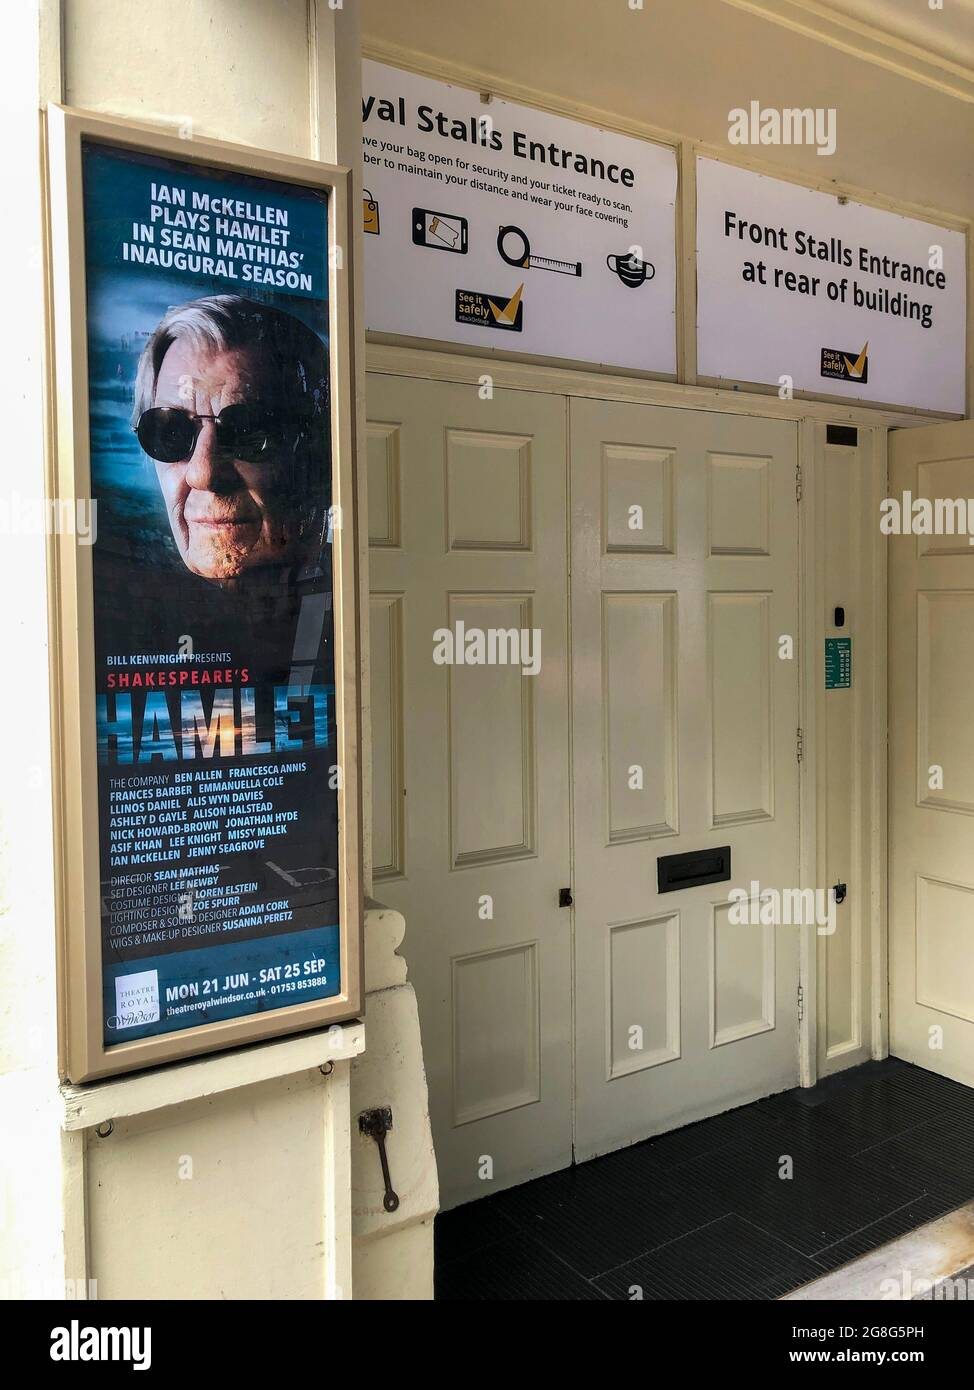 Royal Stalls entrance to the Theatre Royal Windsor, England displaying a poster for HAMLET by Shakespeare starring Sir Ian McKellen as the Danish Prince, running from June to September 2021. Directed by Sian Mathias and produced by Bill Kenwright this is a reimagined age, colour blind and gender blind production. Stock Photo